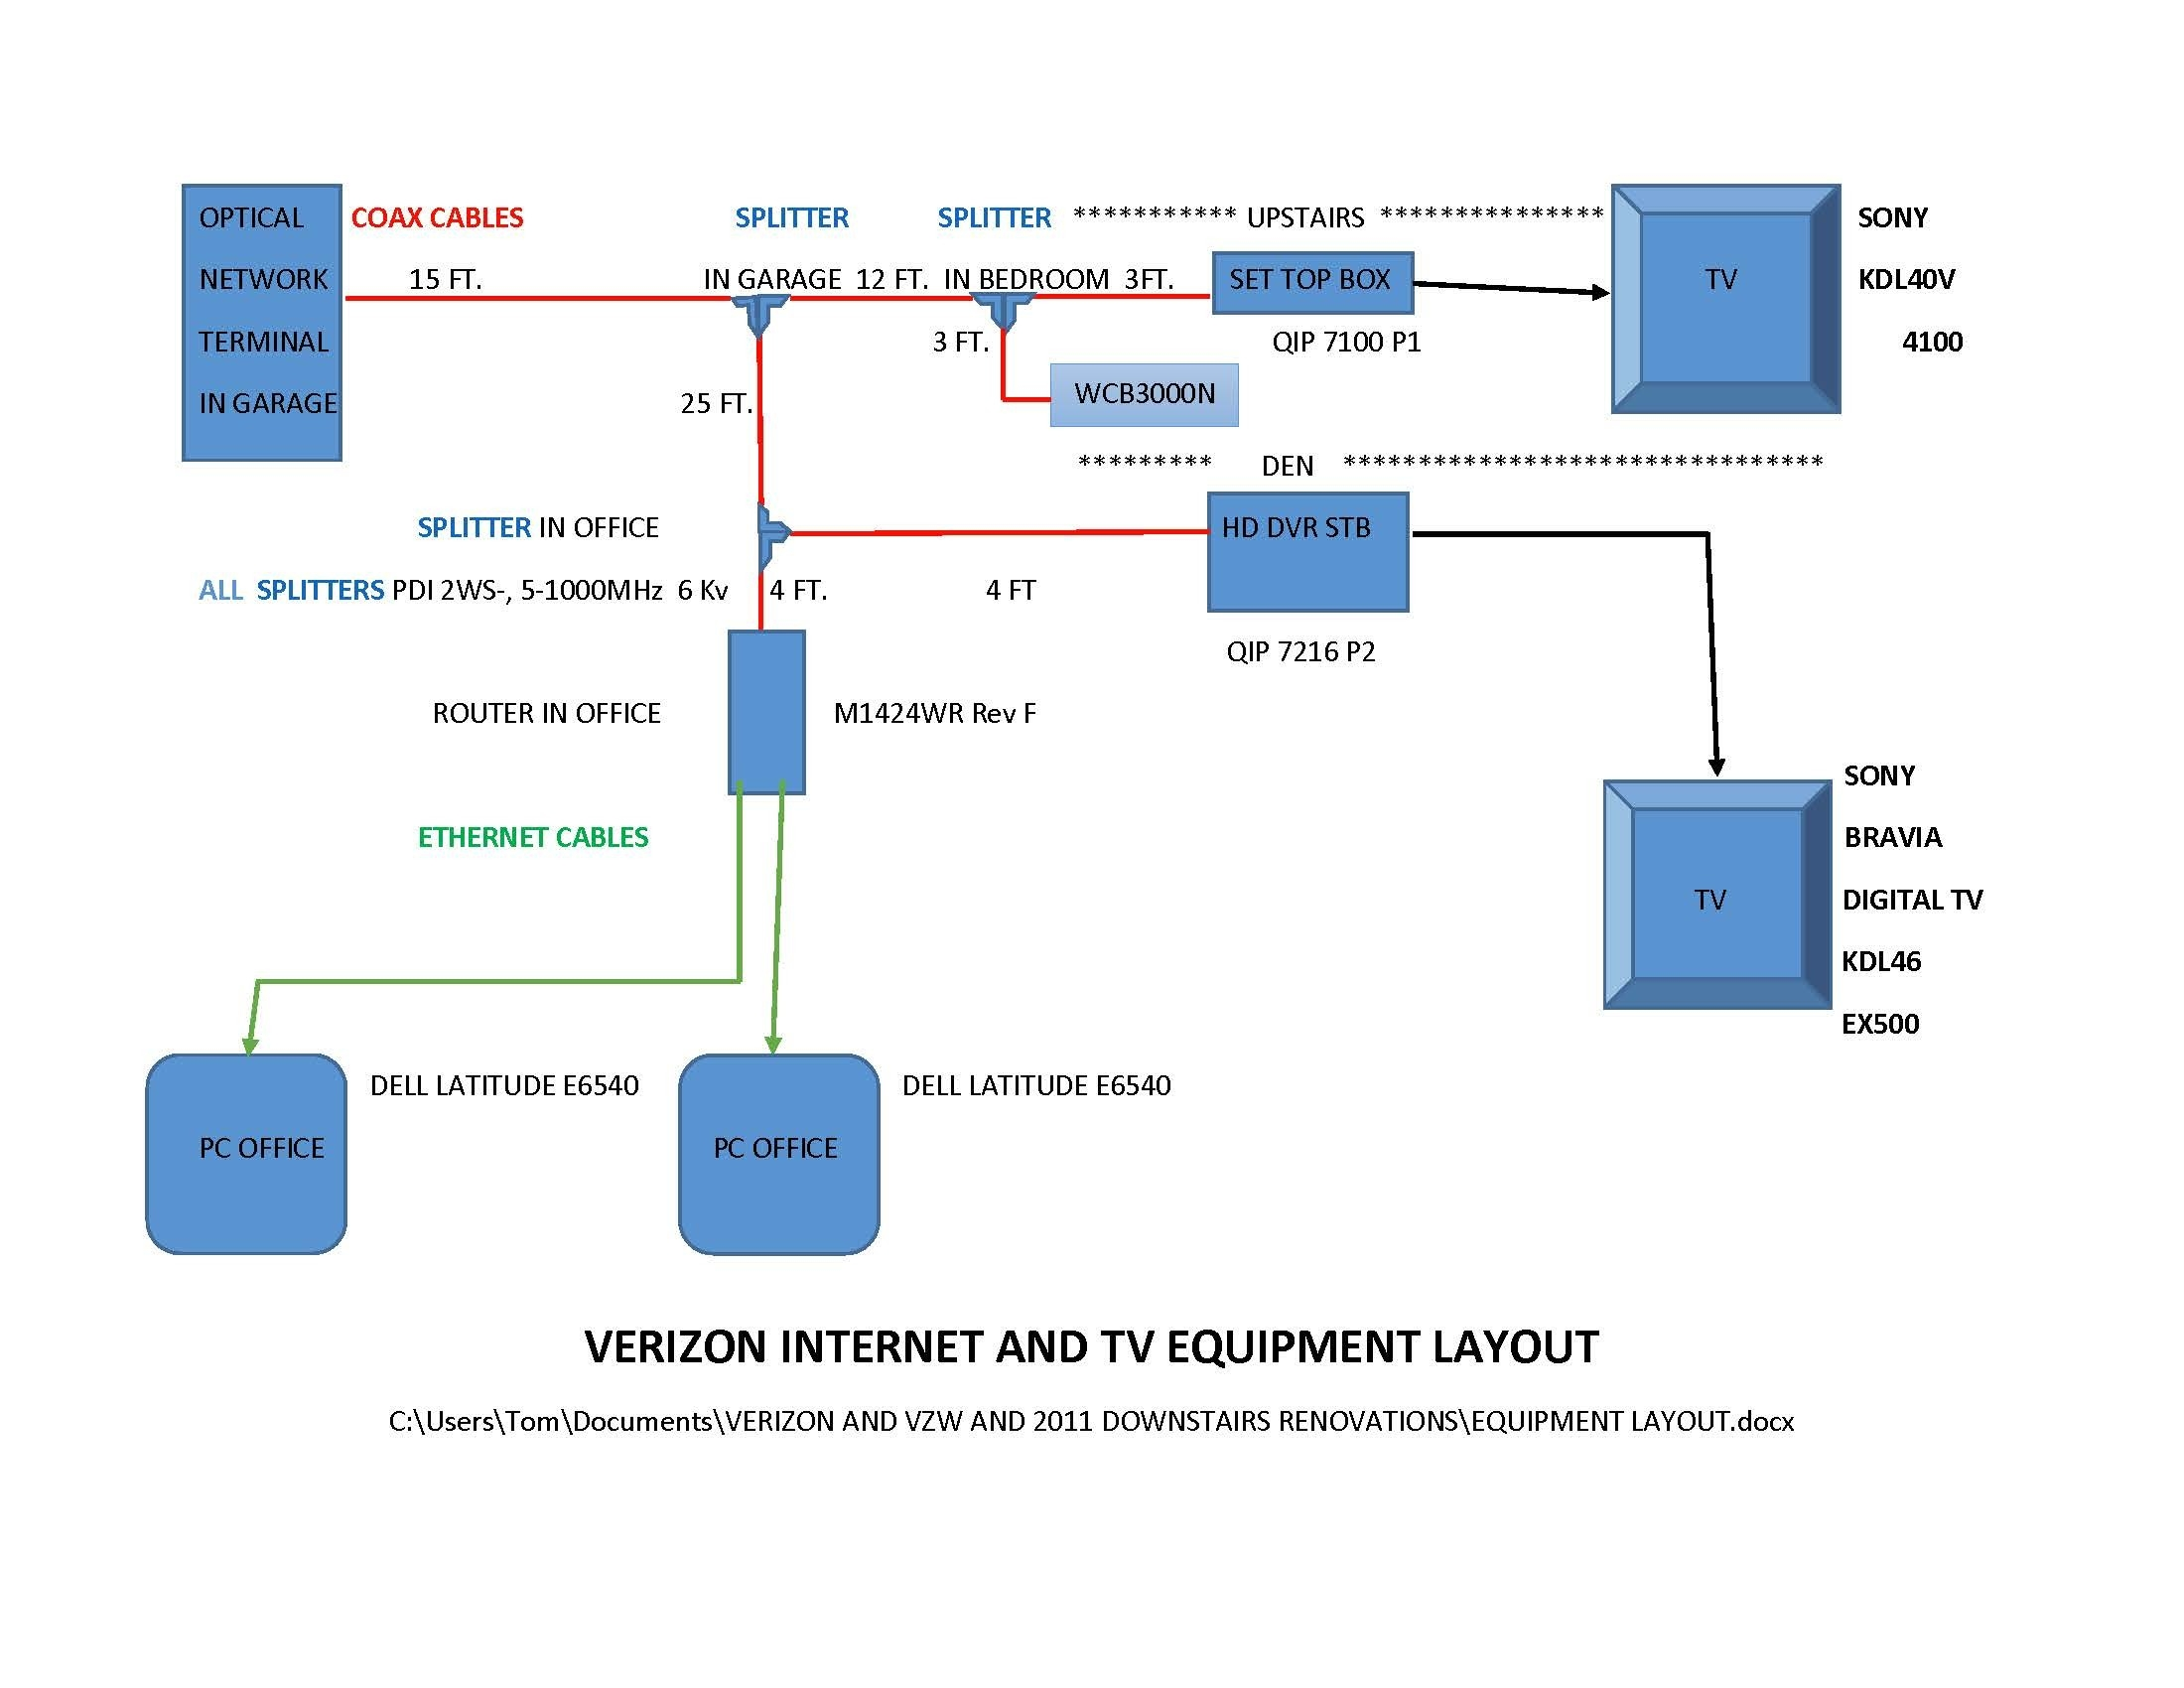 verizon fios wiring diagram Download-Fios Wiring Diagram Luxury Verizon Fios Wiring Diagram & Verizon Fios t Question 20-b